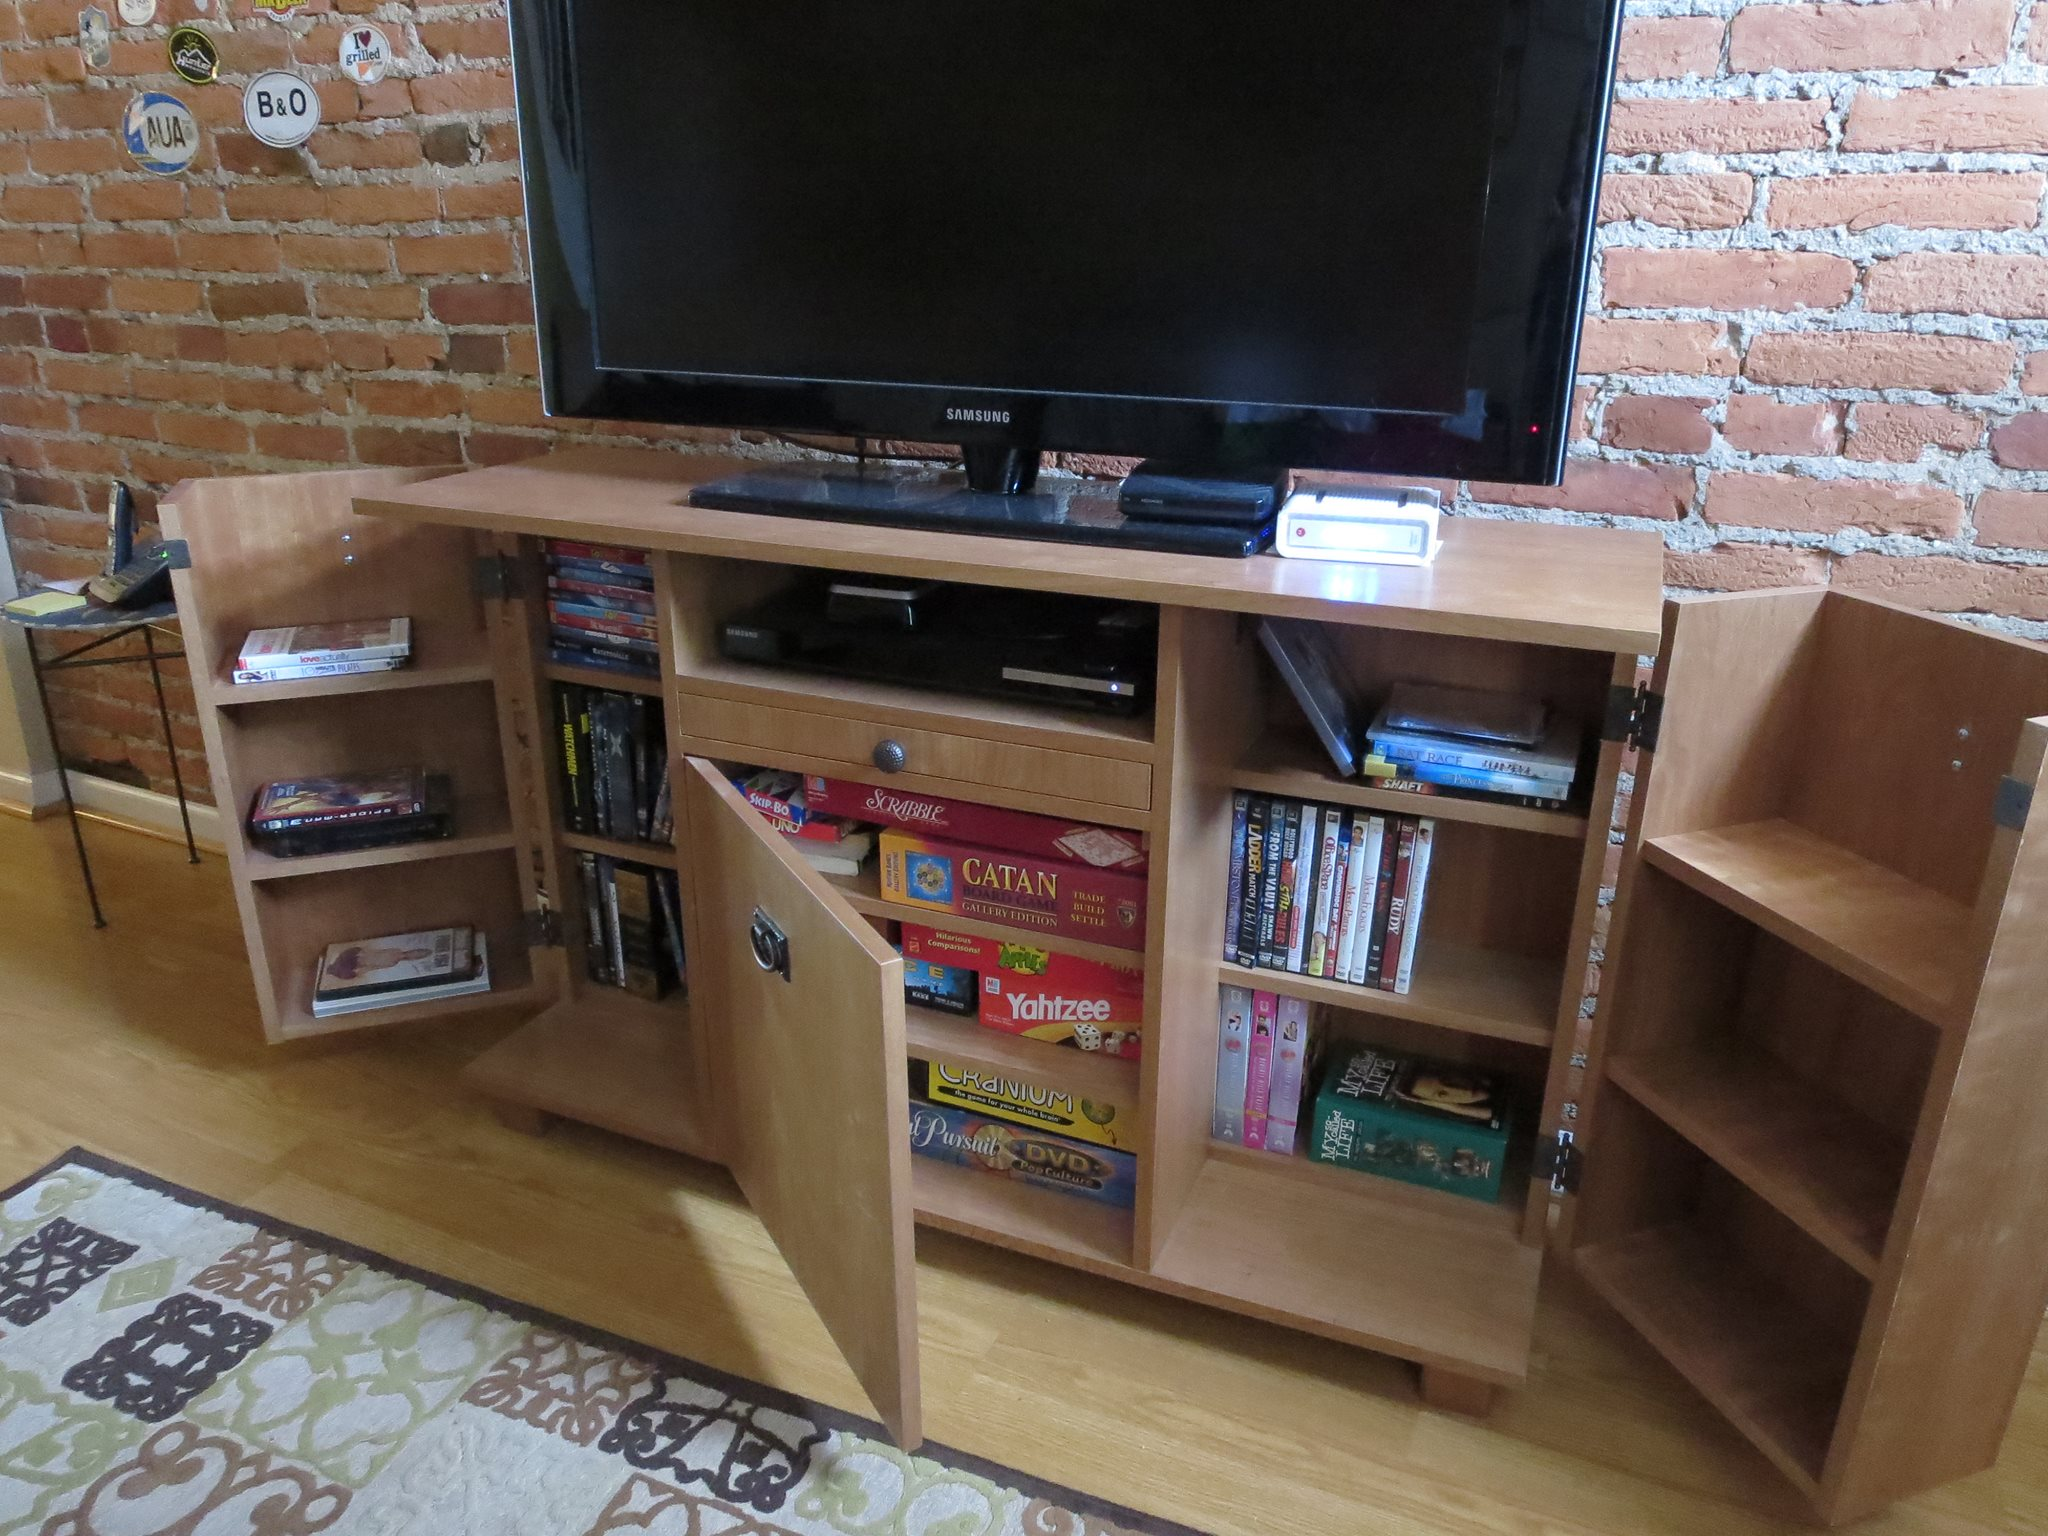 TV Stand With Hidden Storage - Opened